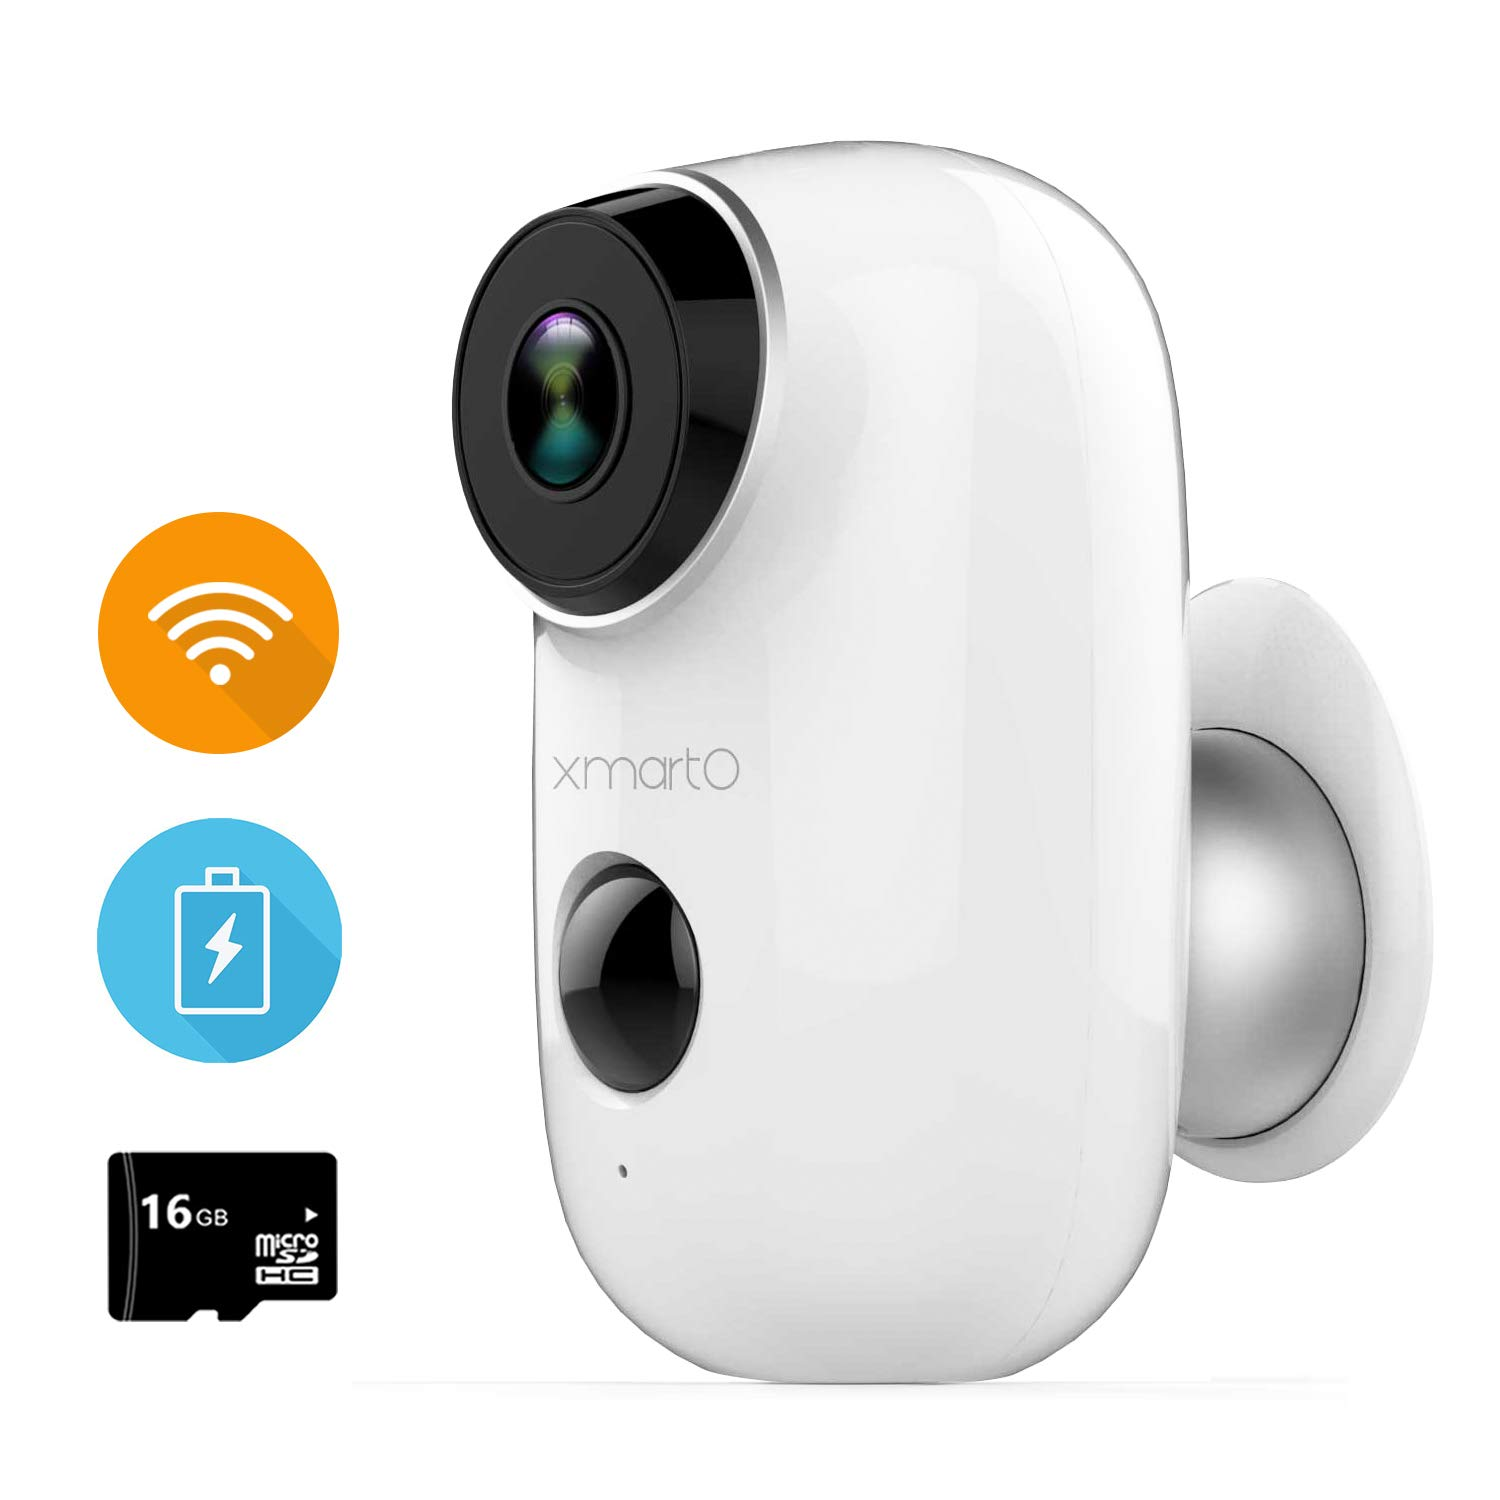 xmartO Wireless Security Camera Outdoor for Home Surveillance, Baby Monitor, Pet Camera, Rechargeable Battery Operated, Motion Detection, 2 Way Audio, Ip65 Weatherproof, Night Vision, 16GB Storage